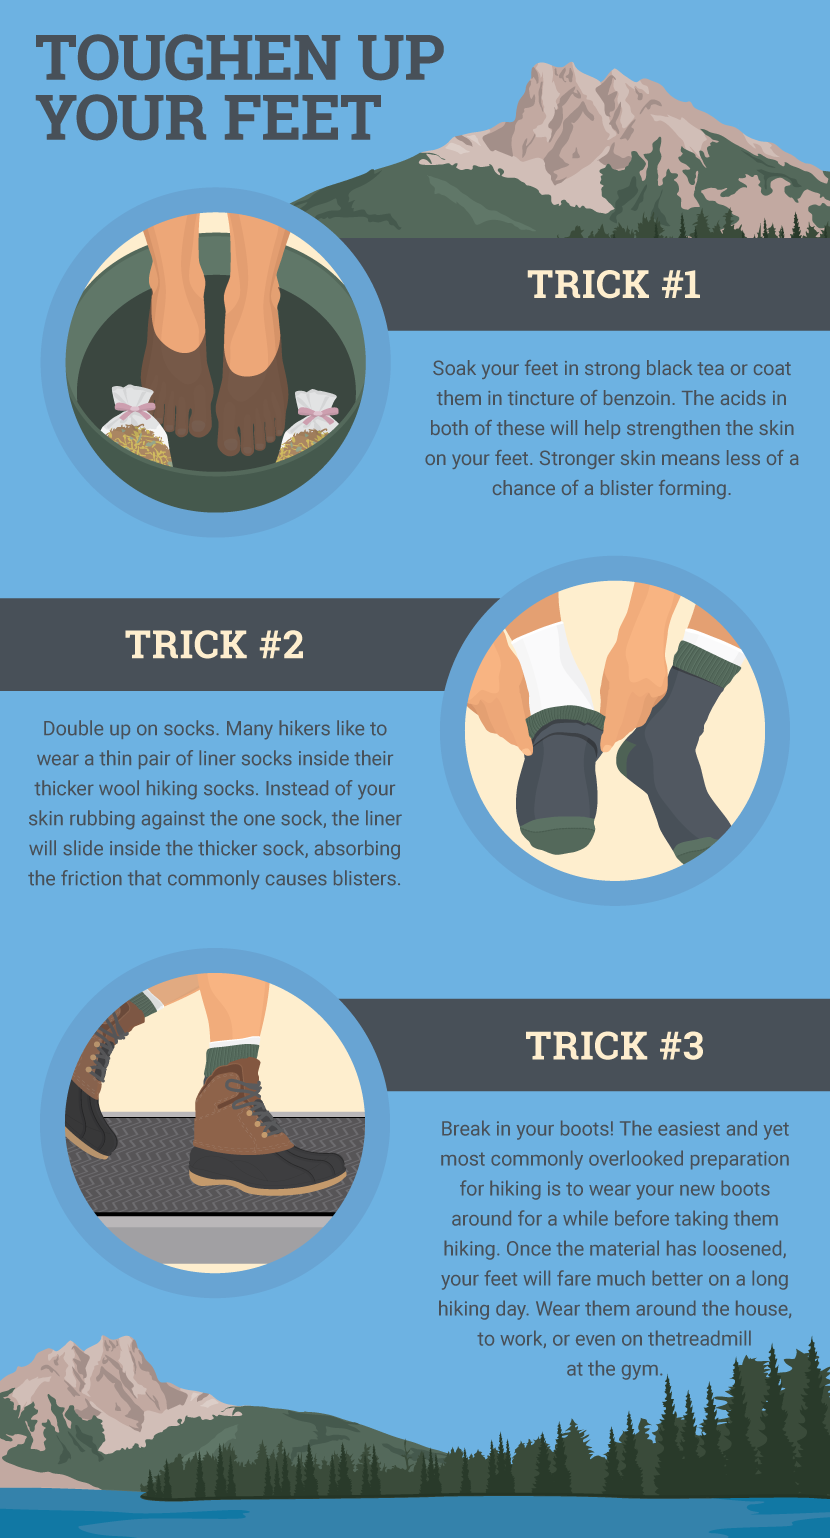 Train For Any Hike: Avoid Injury by Stretching and Training